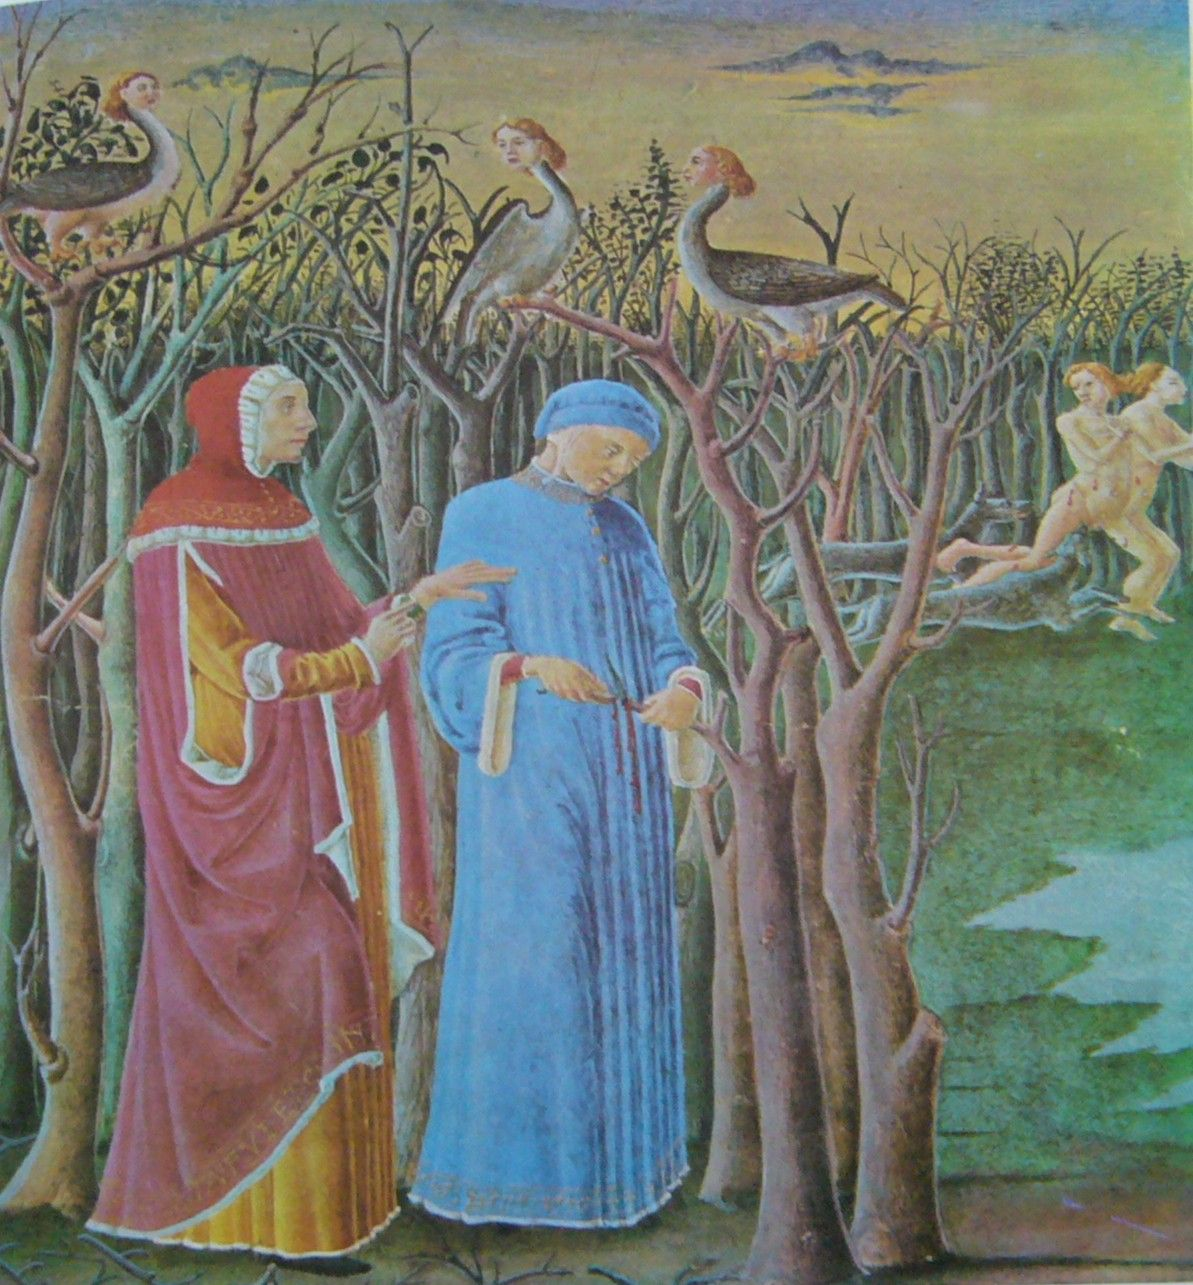 inferno by dante alighieri profoundly medieval and renaissance Amazoncom: the divine comedy trilogy: the inferno, purgatory, paradise plus a life of dante (9789626342244): dante alighieri: books the divine comedy (dante alighieri's divine comedy) audio cd dante alighieri as a result, it became the defining work for the late middle ages and renaissance dante would.